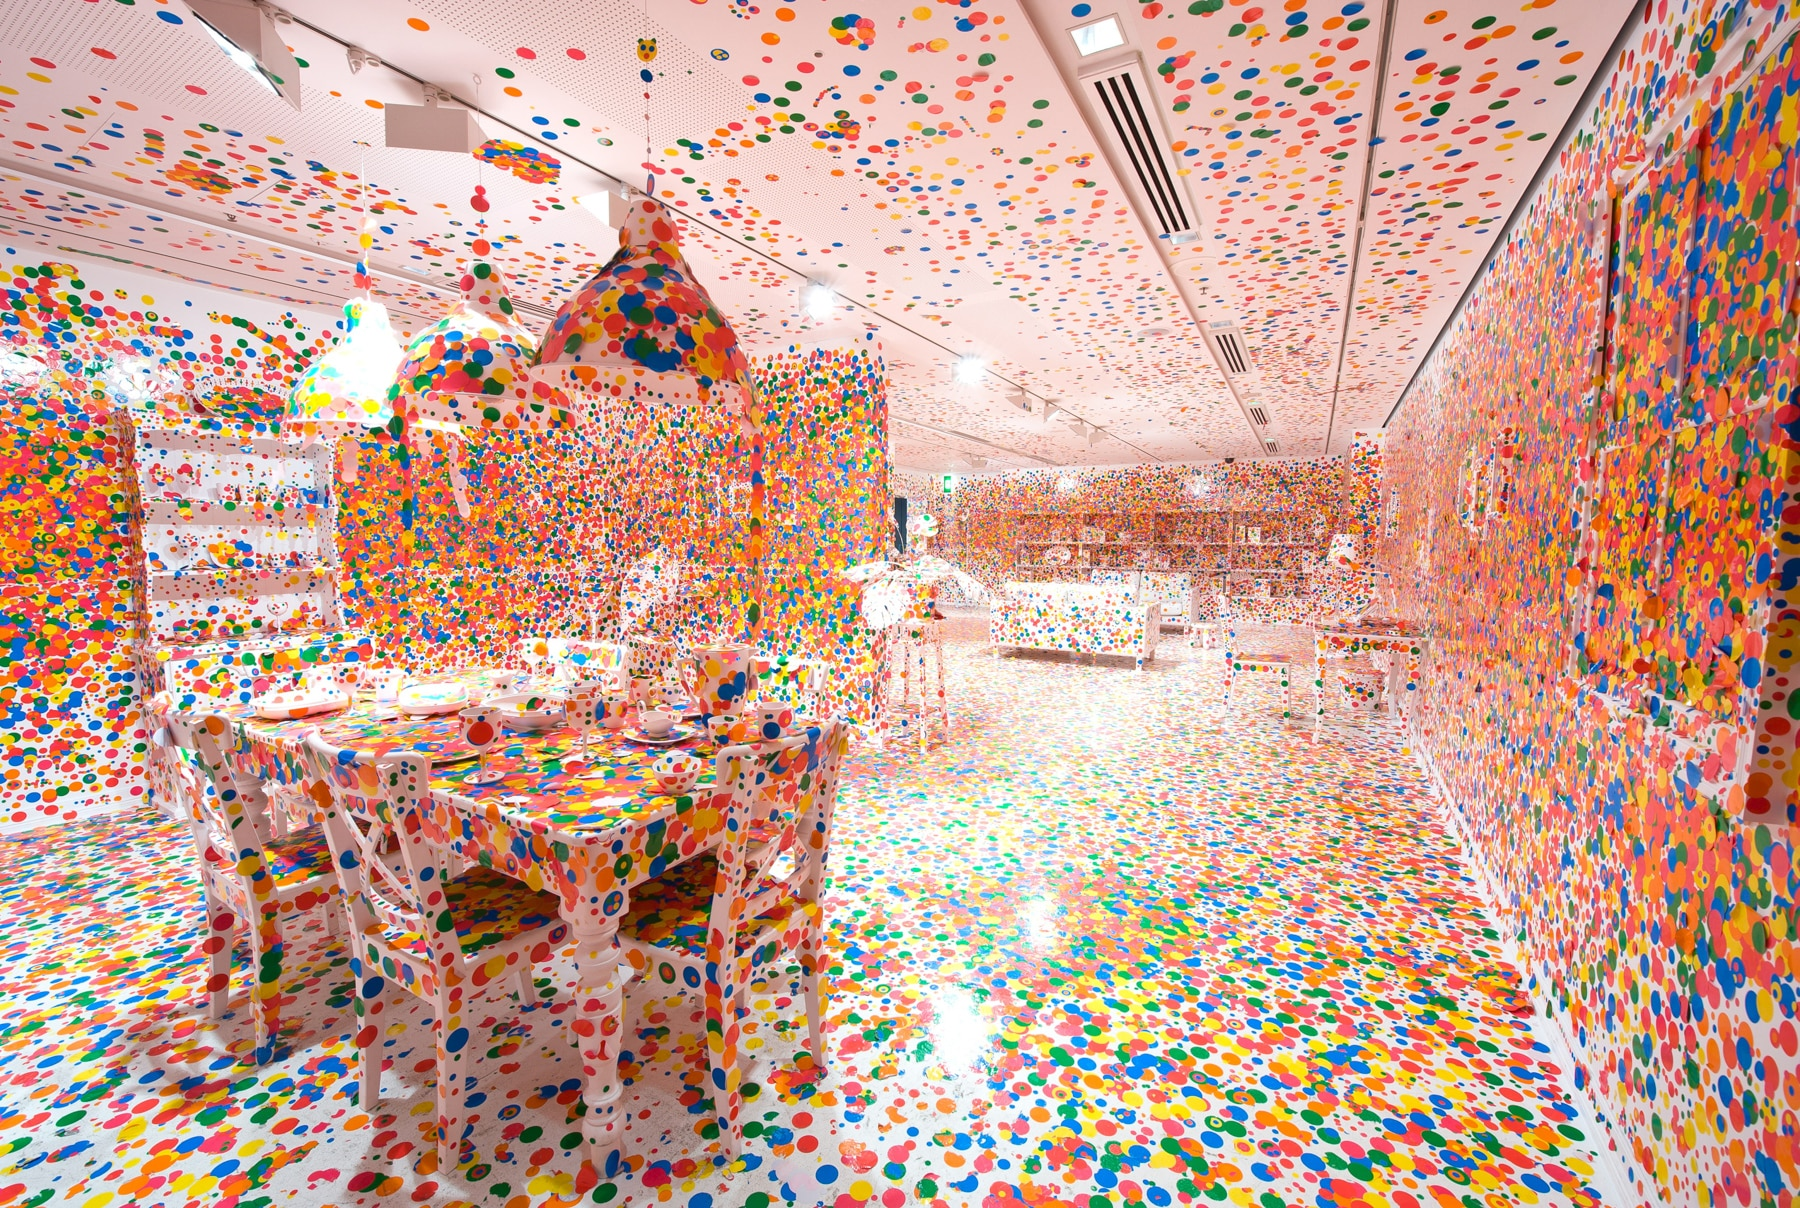 Room with dining table, chairs, bookshelves, lamps and other furniture covered with multicolored polka dots (Hirshhorn Museum)